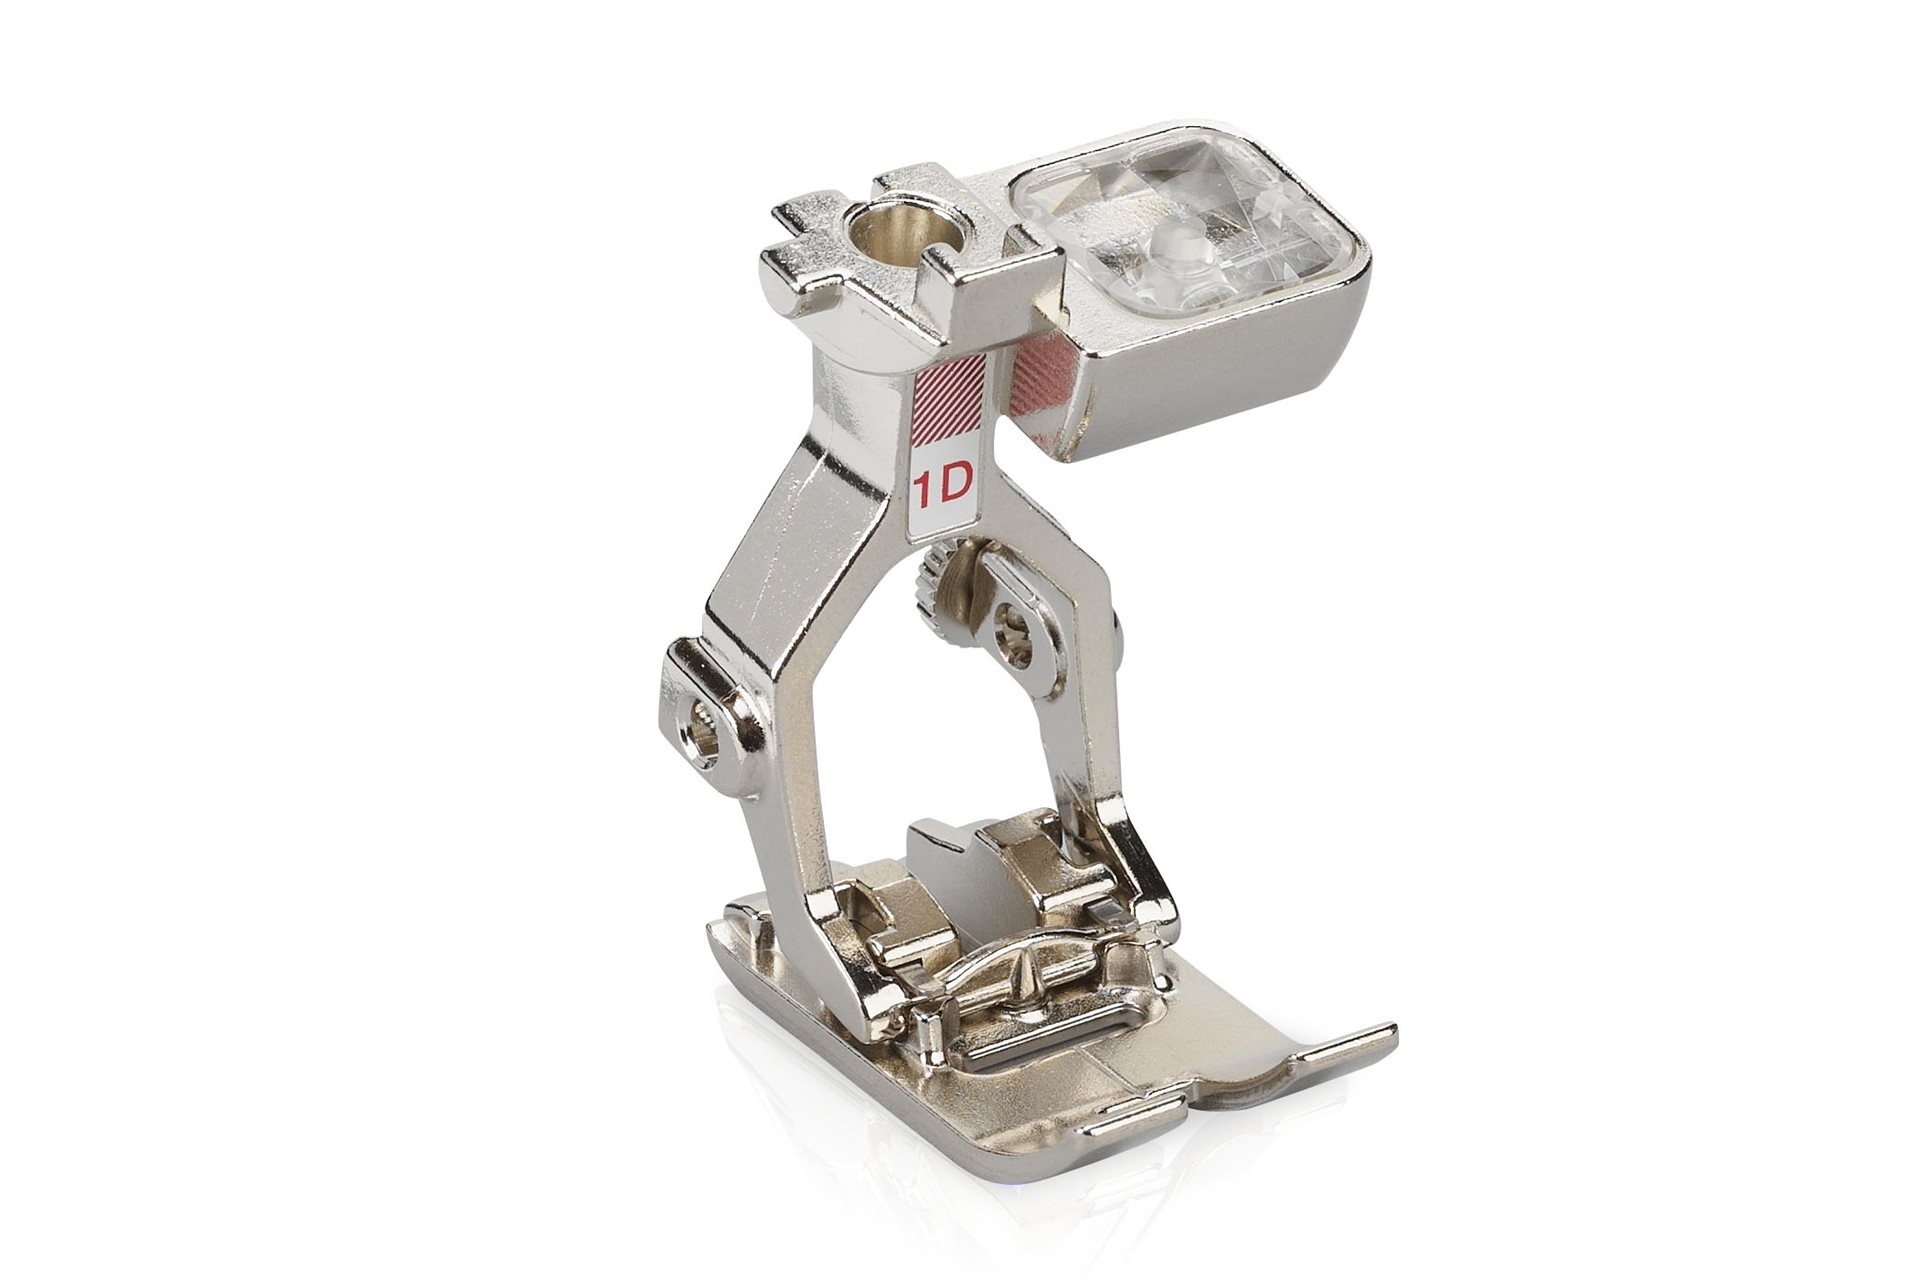 BERNINA 770 QEE - Accessories - BERNINA